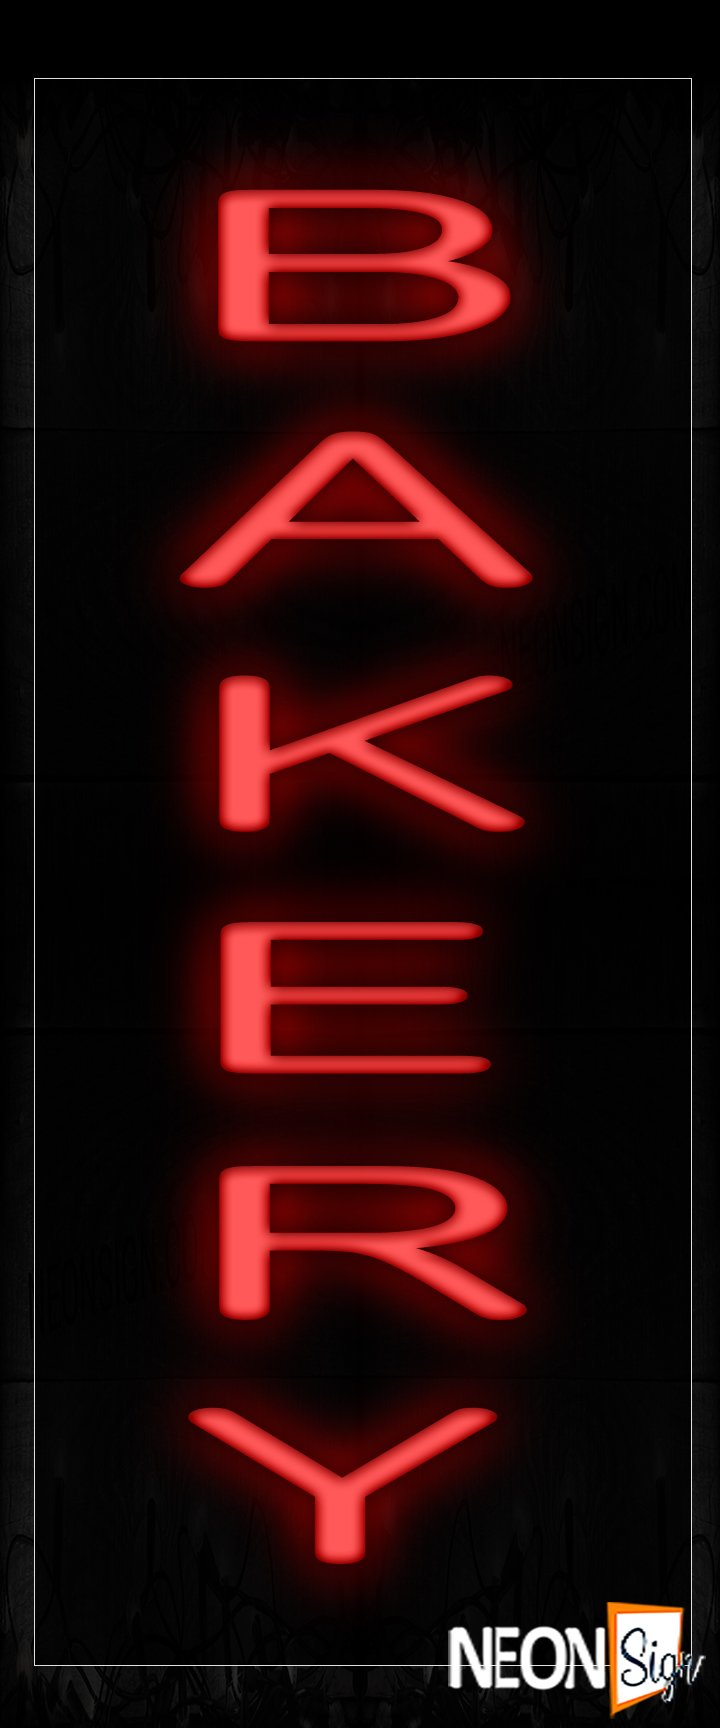 Image of 12197 Bakery (Vertical) Neon Signs_10x24 Black Backing